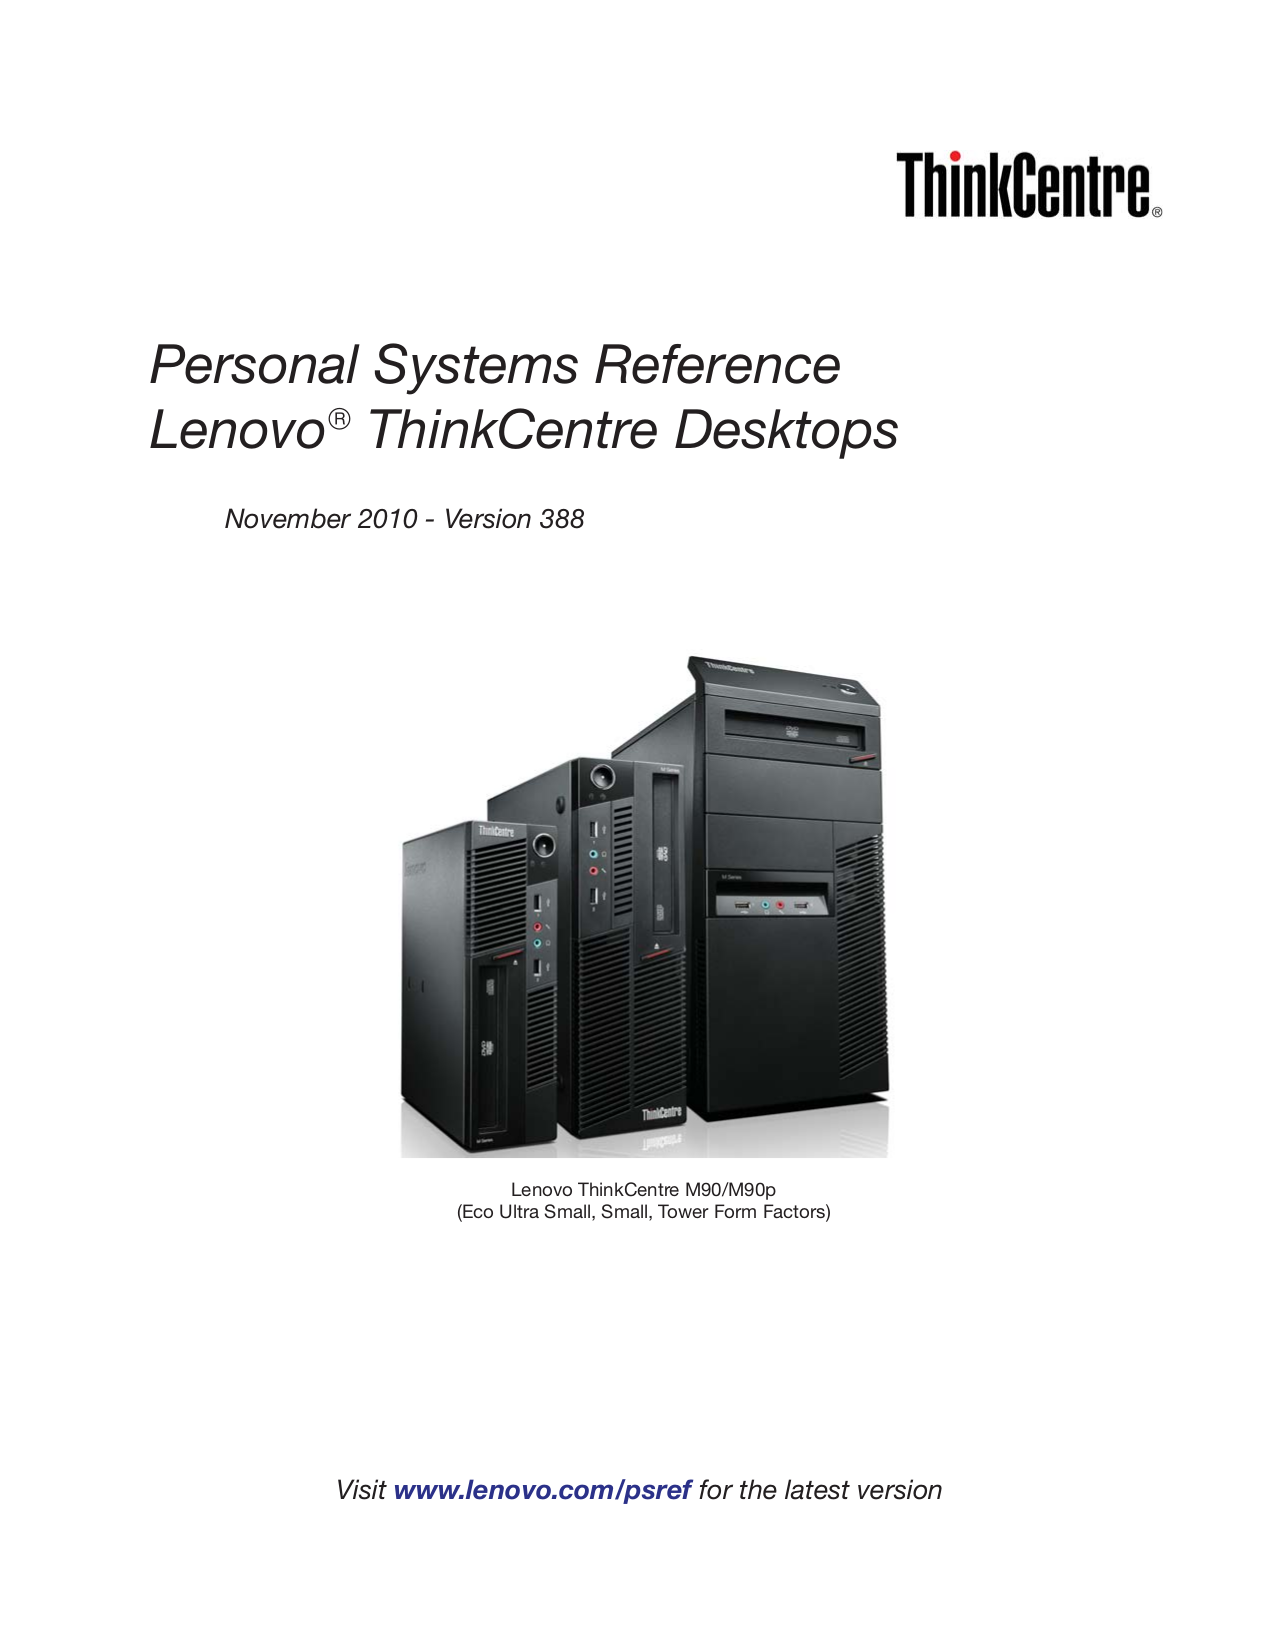 pdf for Lenovo Desktop ThinkCentre M90p 3257 manual